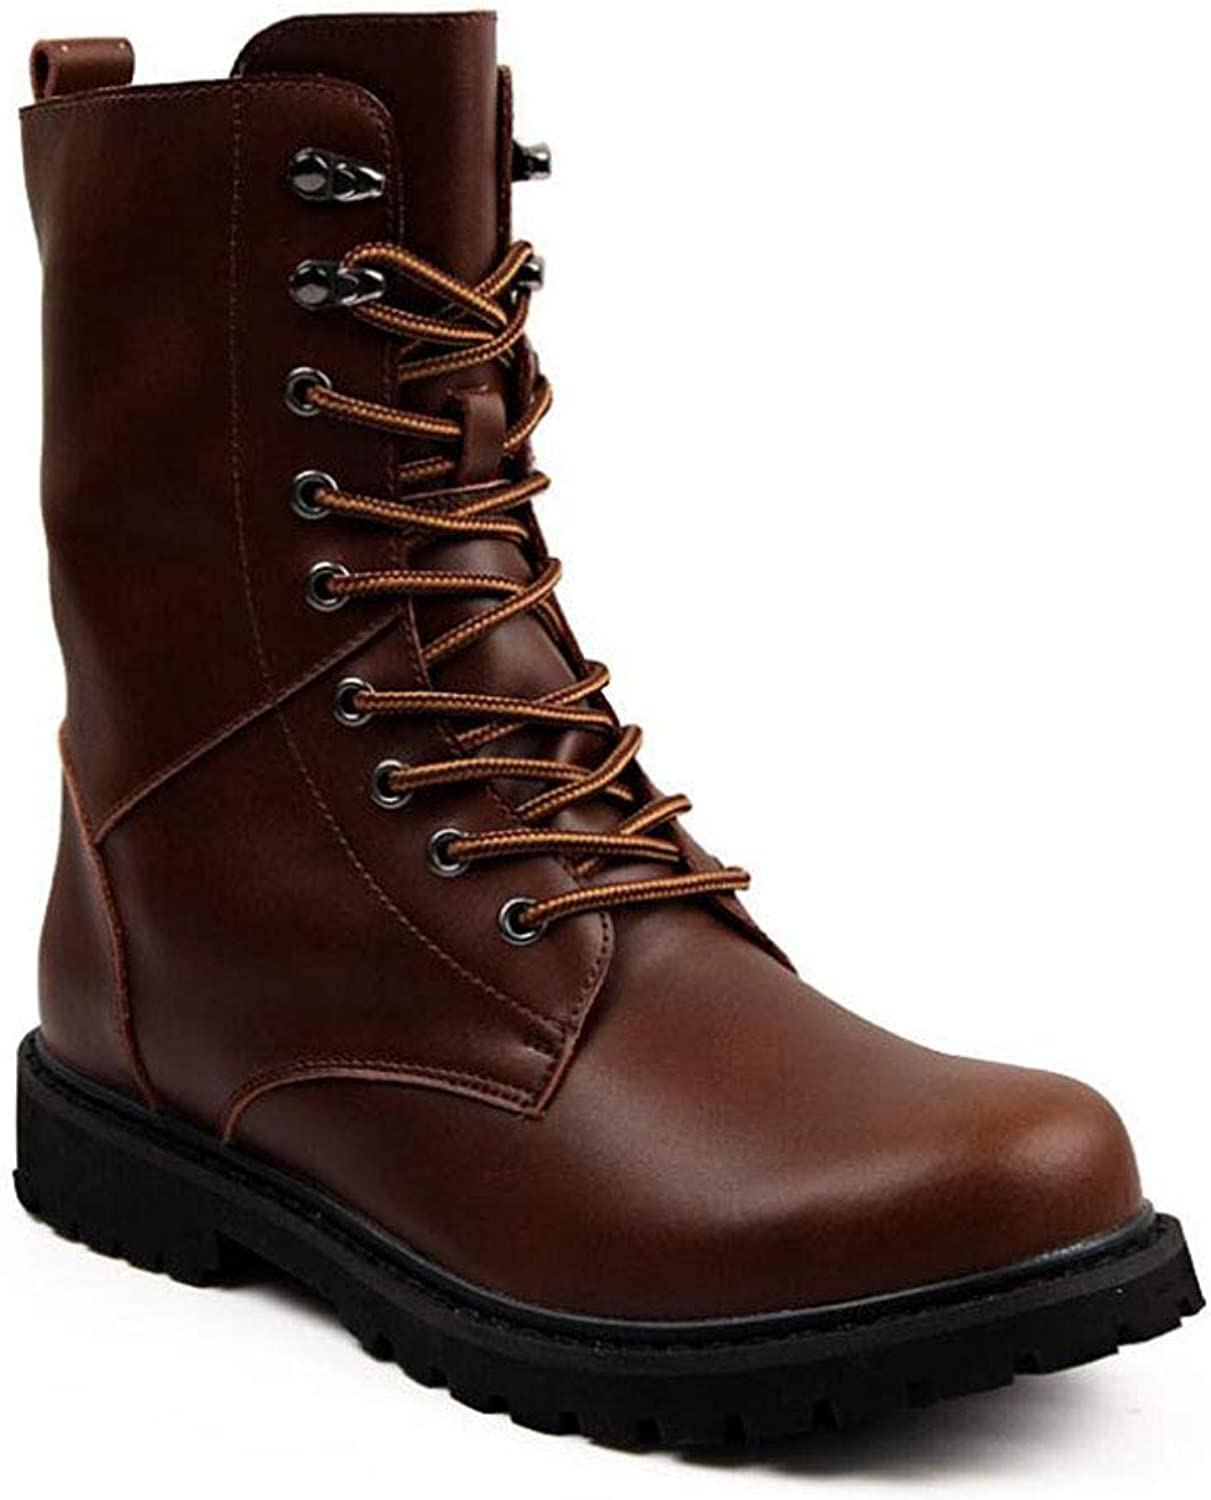 Men's Fashion Boots Leather Fleece Fall Winter Comfort Boots Mid-Calf Boots,Ankle Boots,Comfort Martins Style,Personality Military Boots, Outdoor Travel